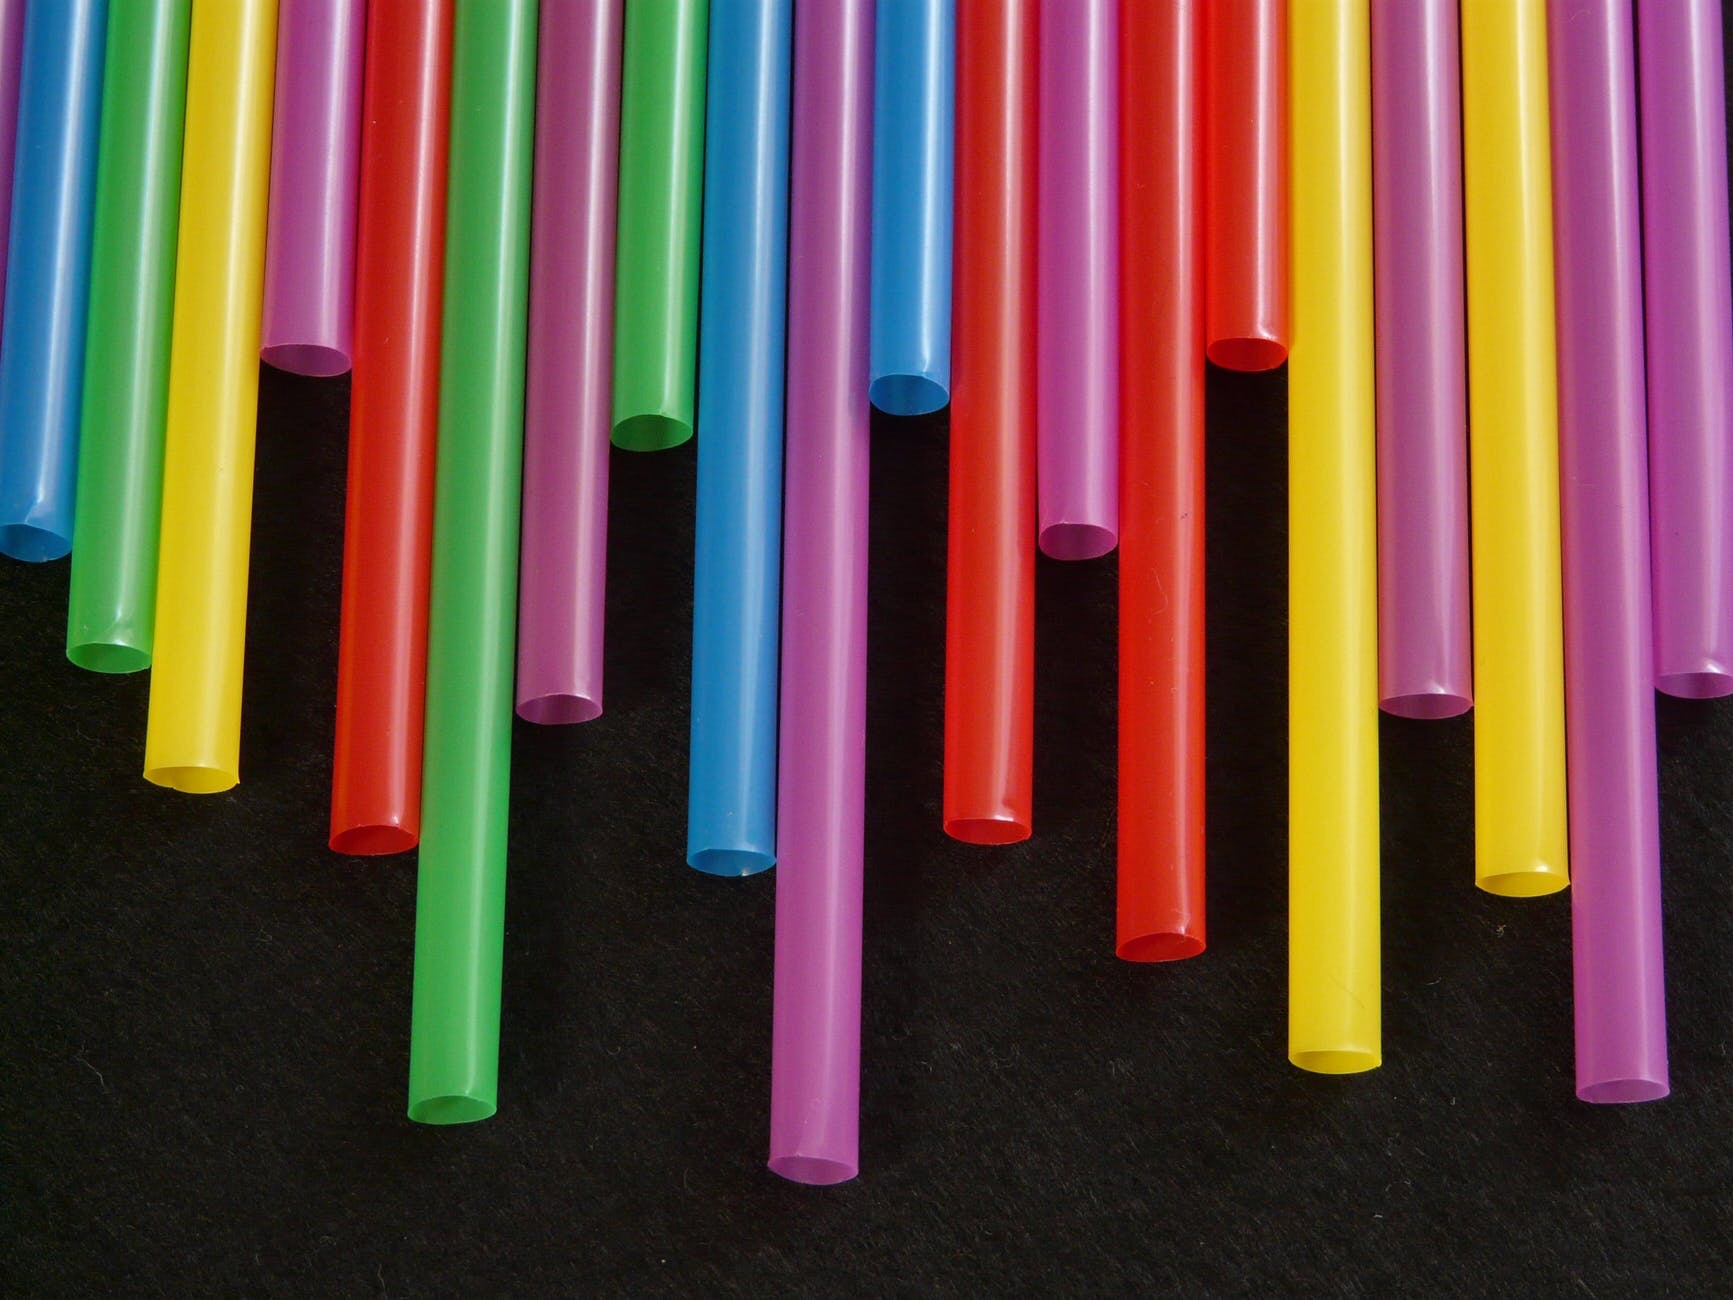 11 Uses of the Drinking Straw other than drinking